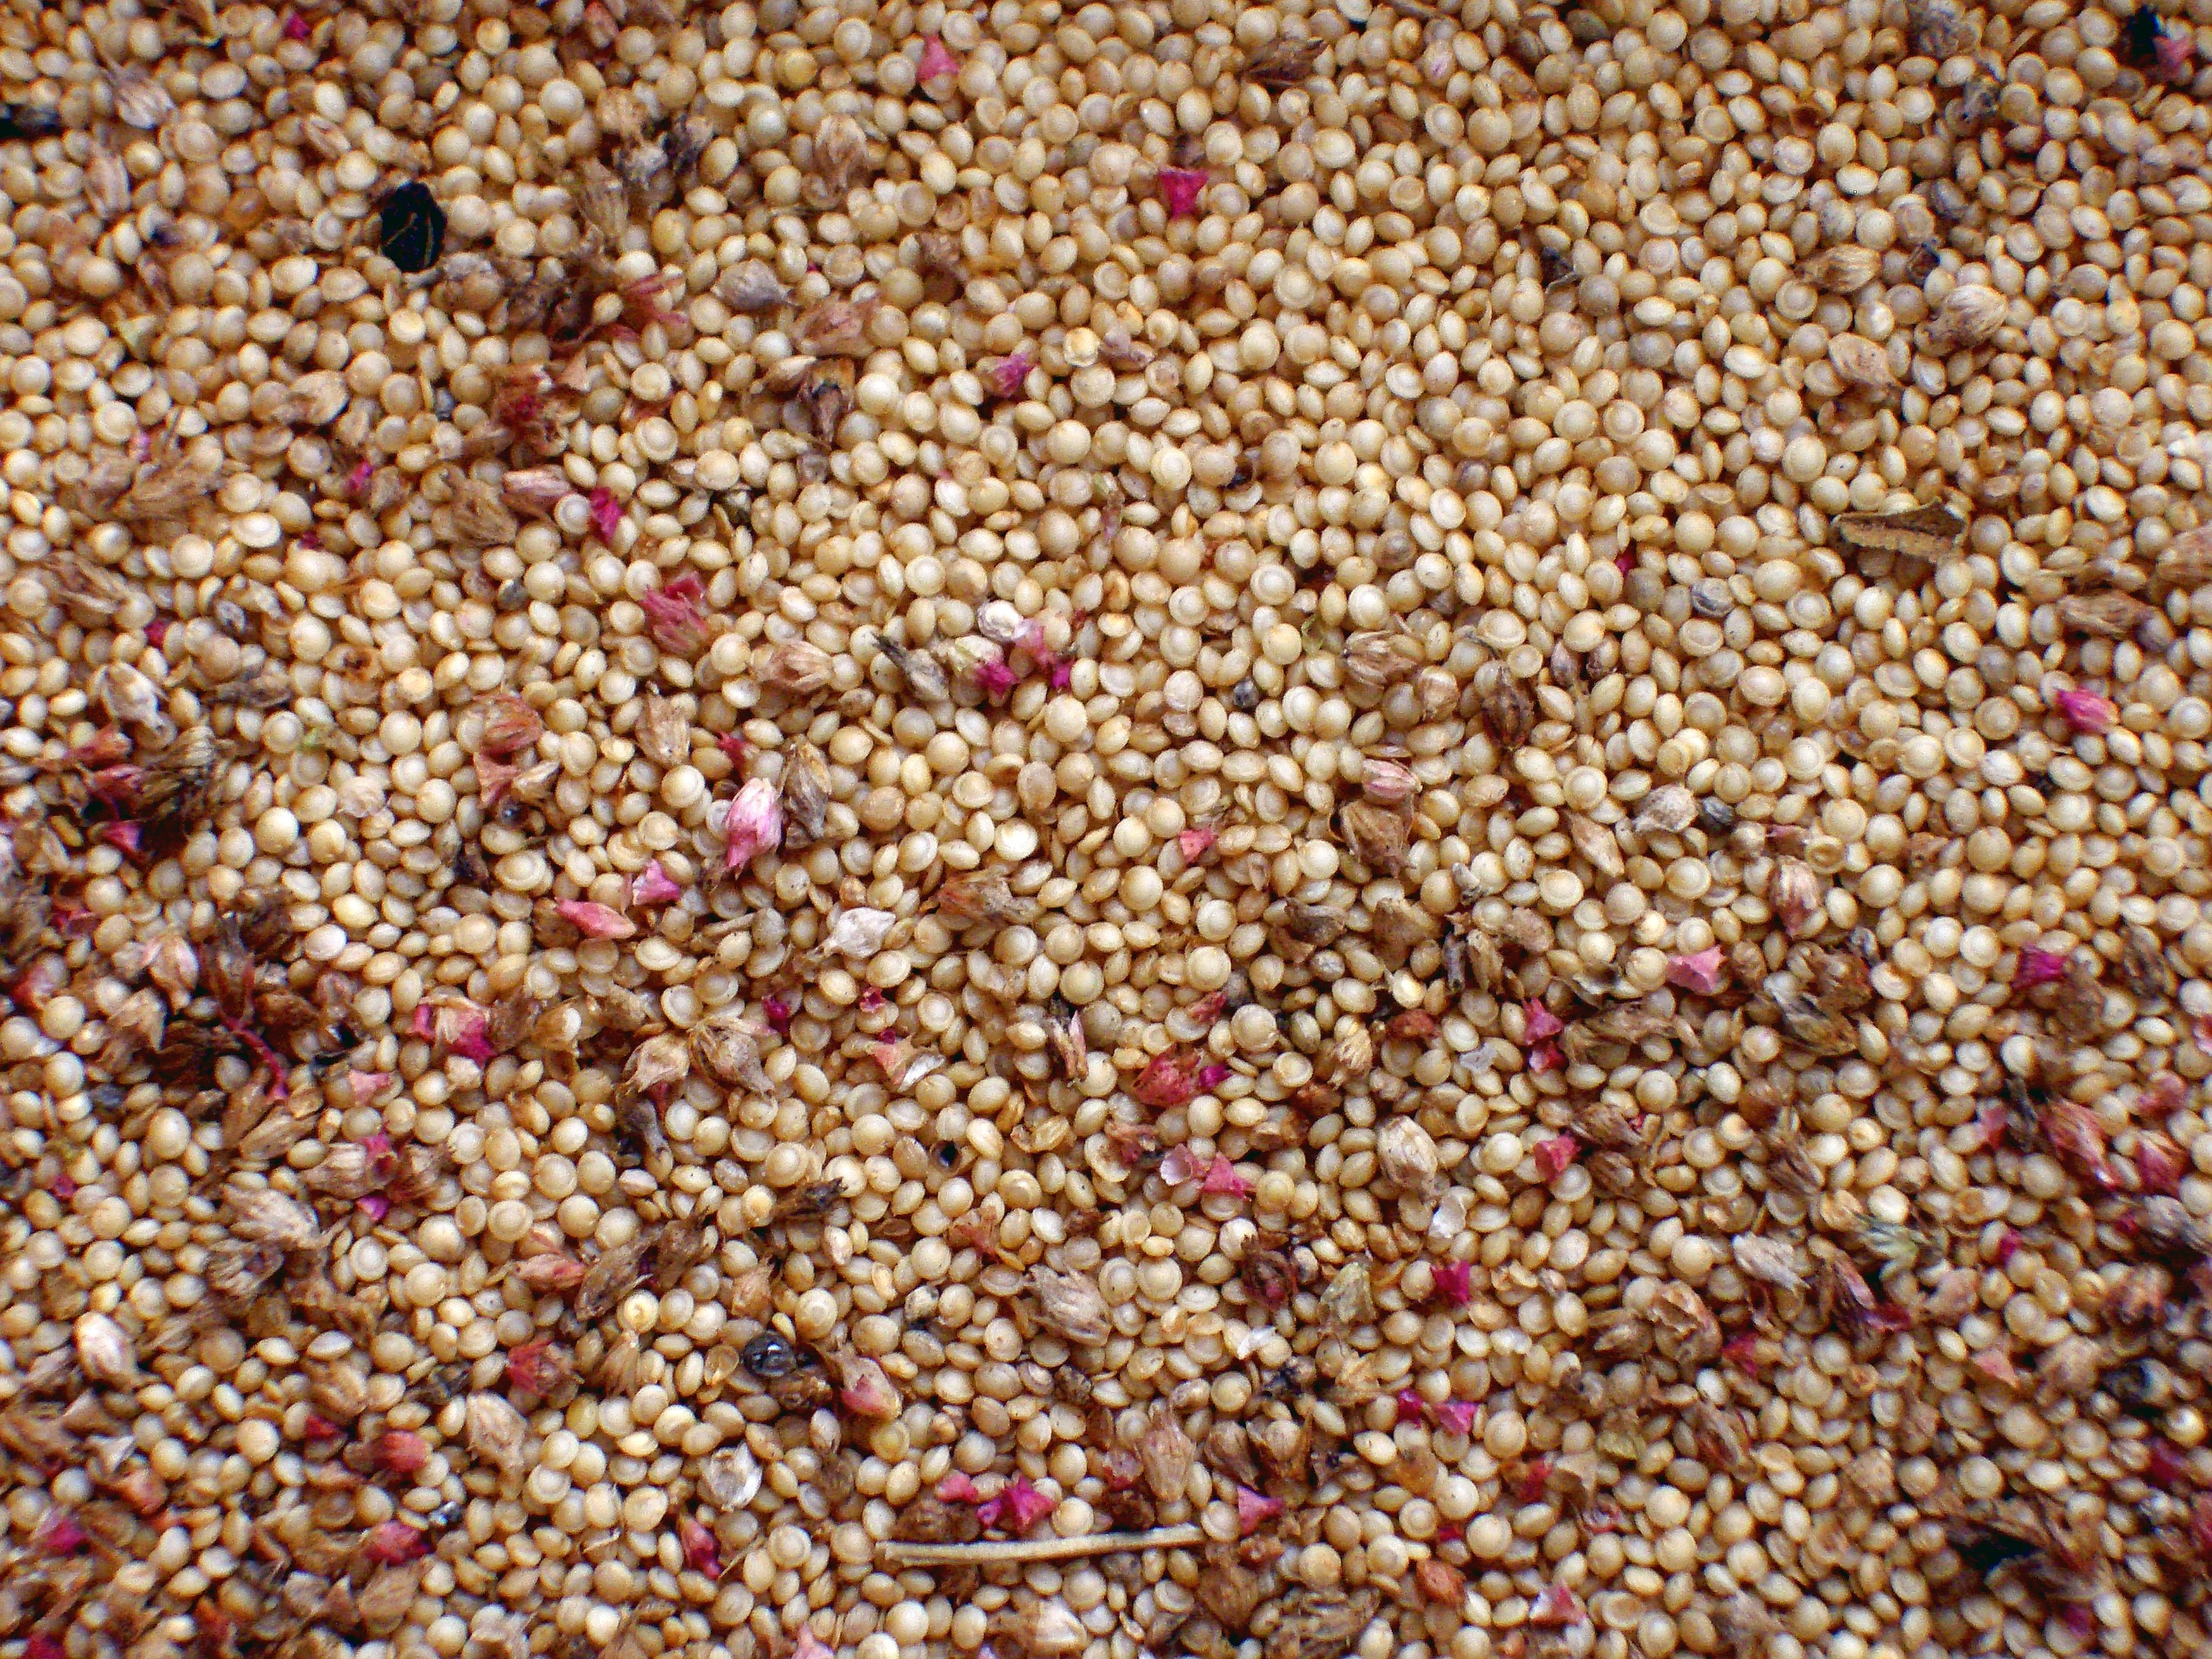 Seeds Nutritious Super Food Recommended By Dietitians